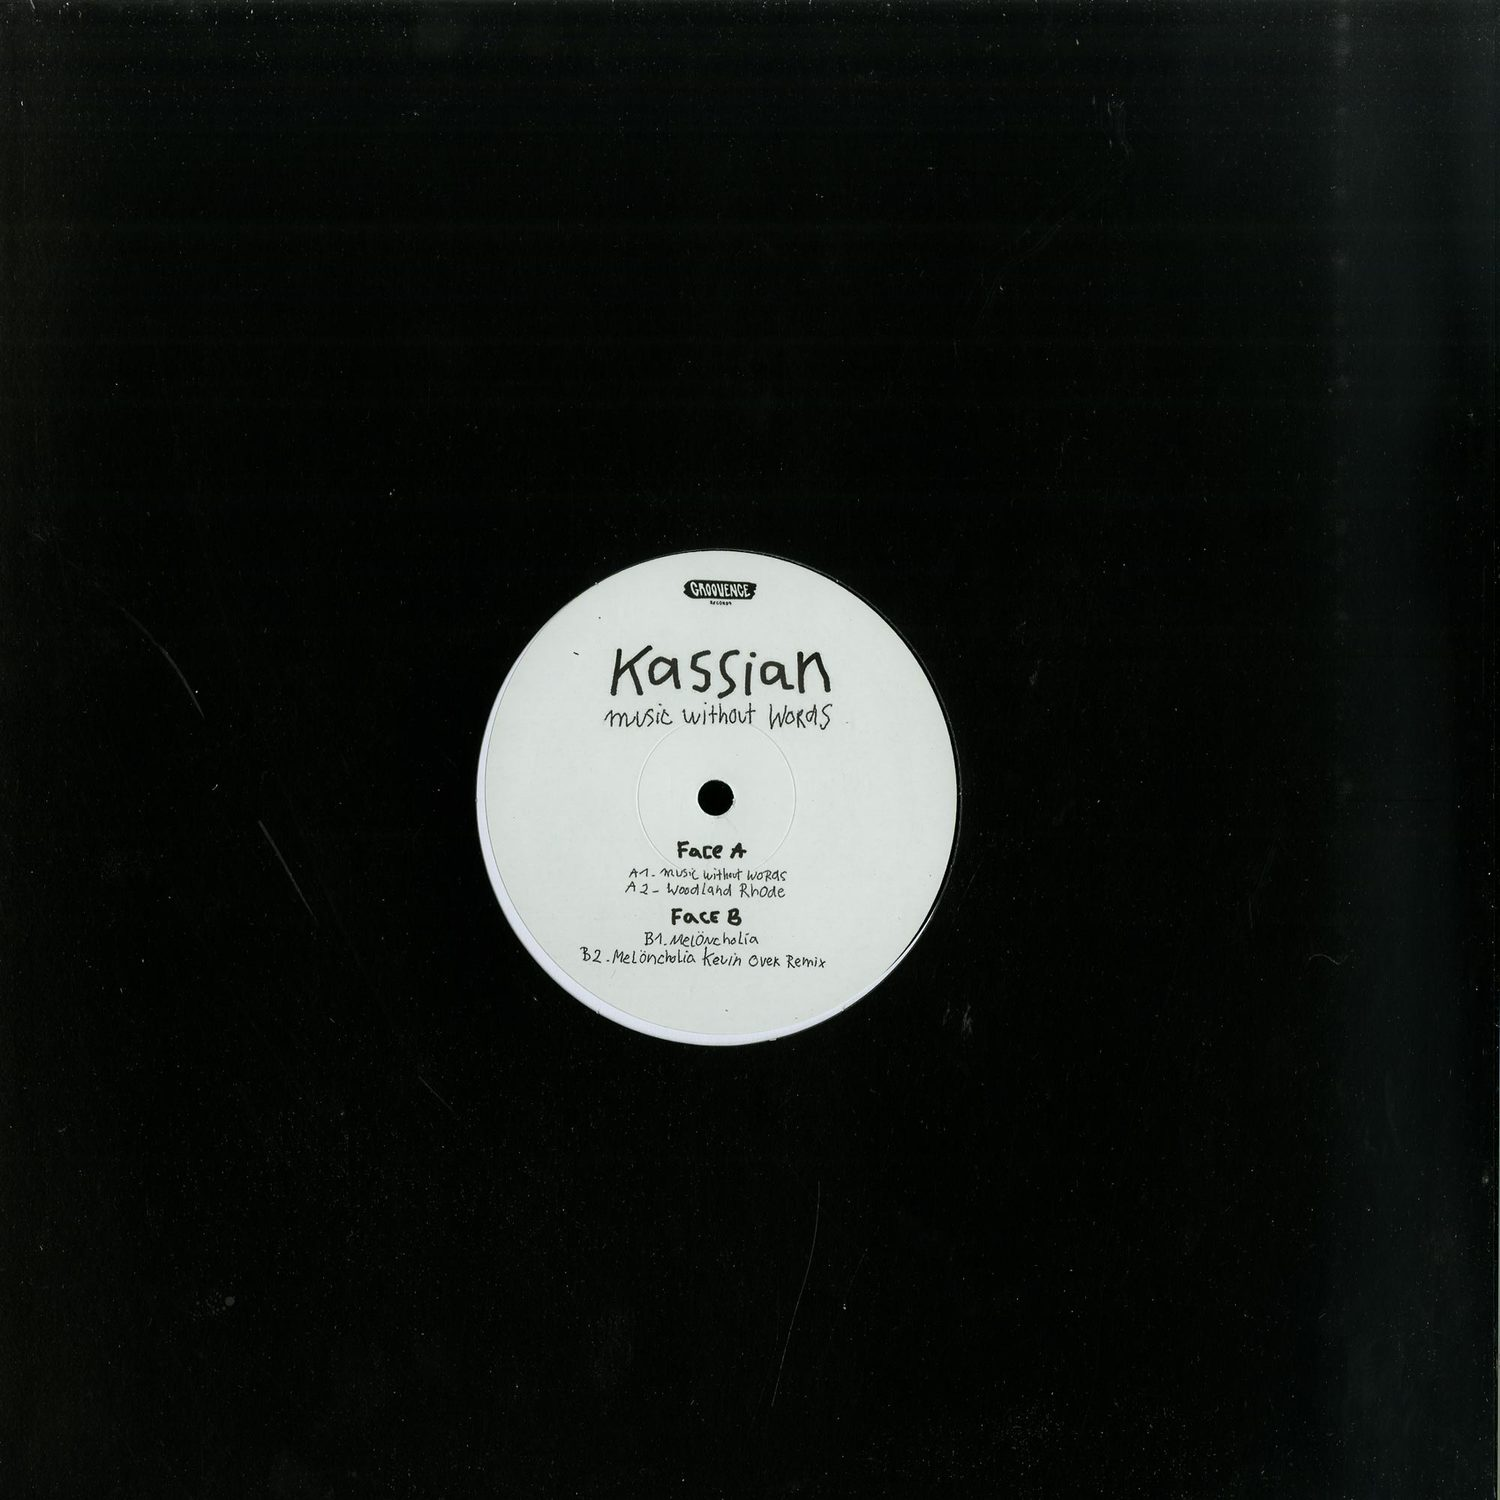 Kassian - MUSIC WITHOUT WORDS